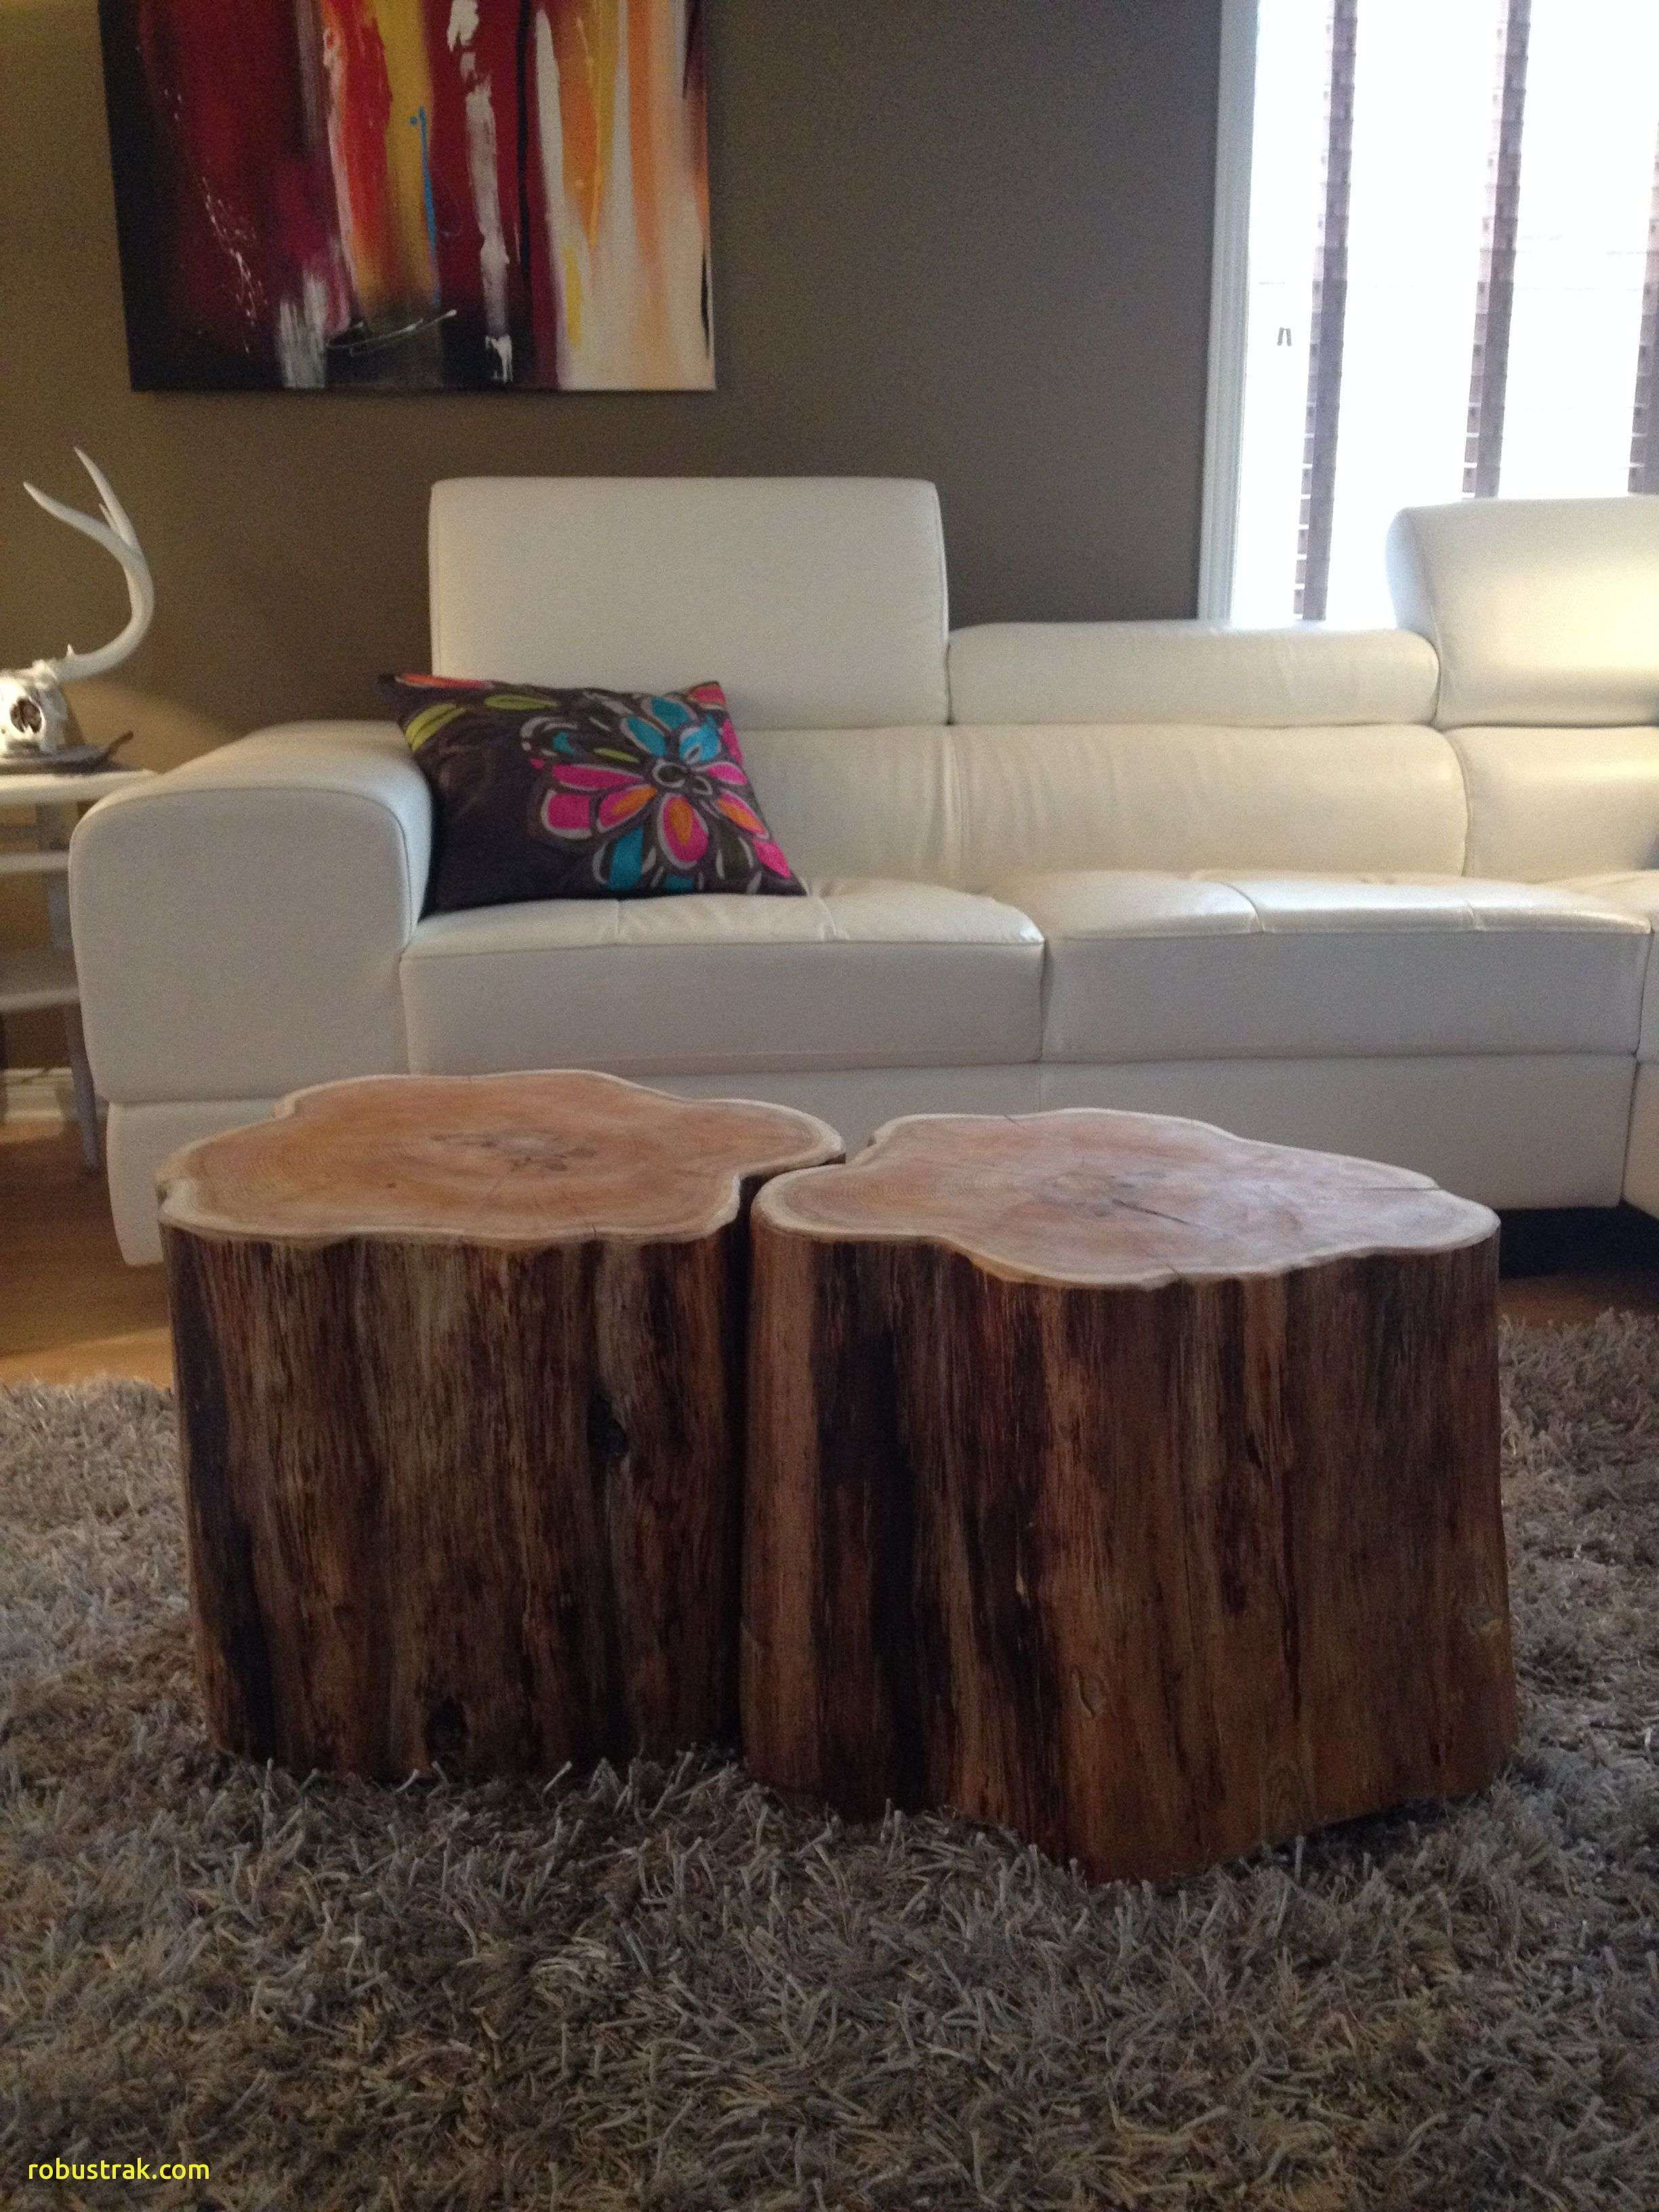 Awesome Tree Stump Coffee Table Homedecoration Homedecorations Homedecorationideas Homedecorationtrend Coffee Table Coffee Table Trunk Tree Coffee Table [ 3264 x 2448 Pixel ]